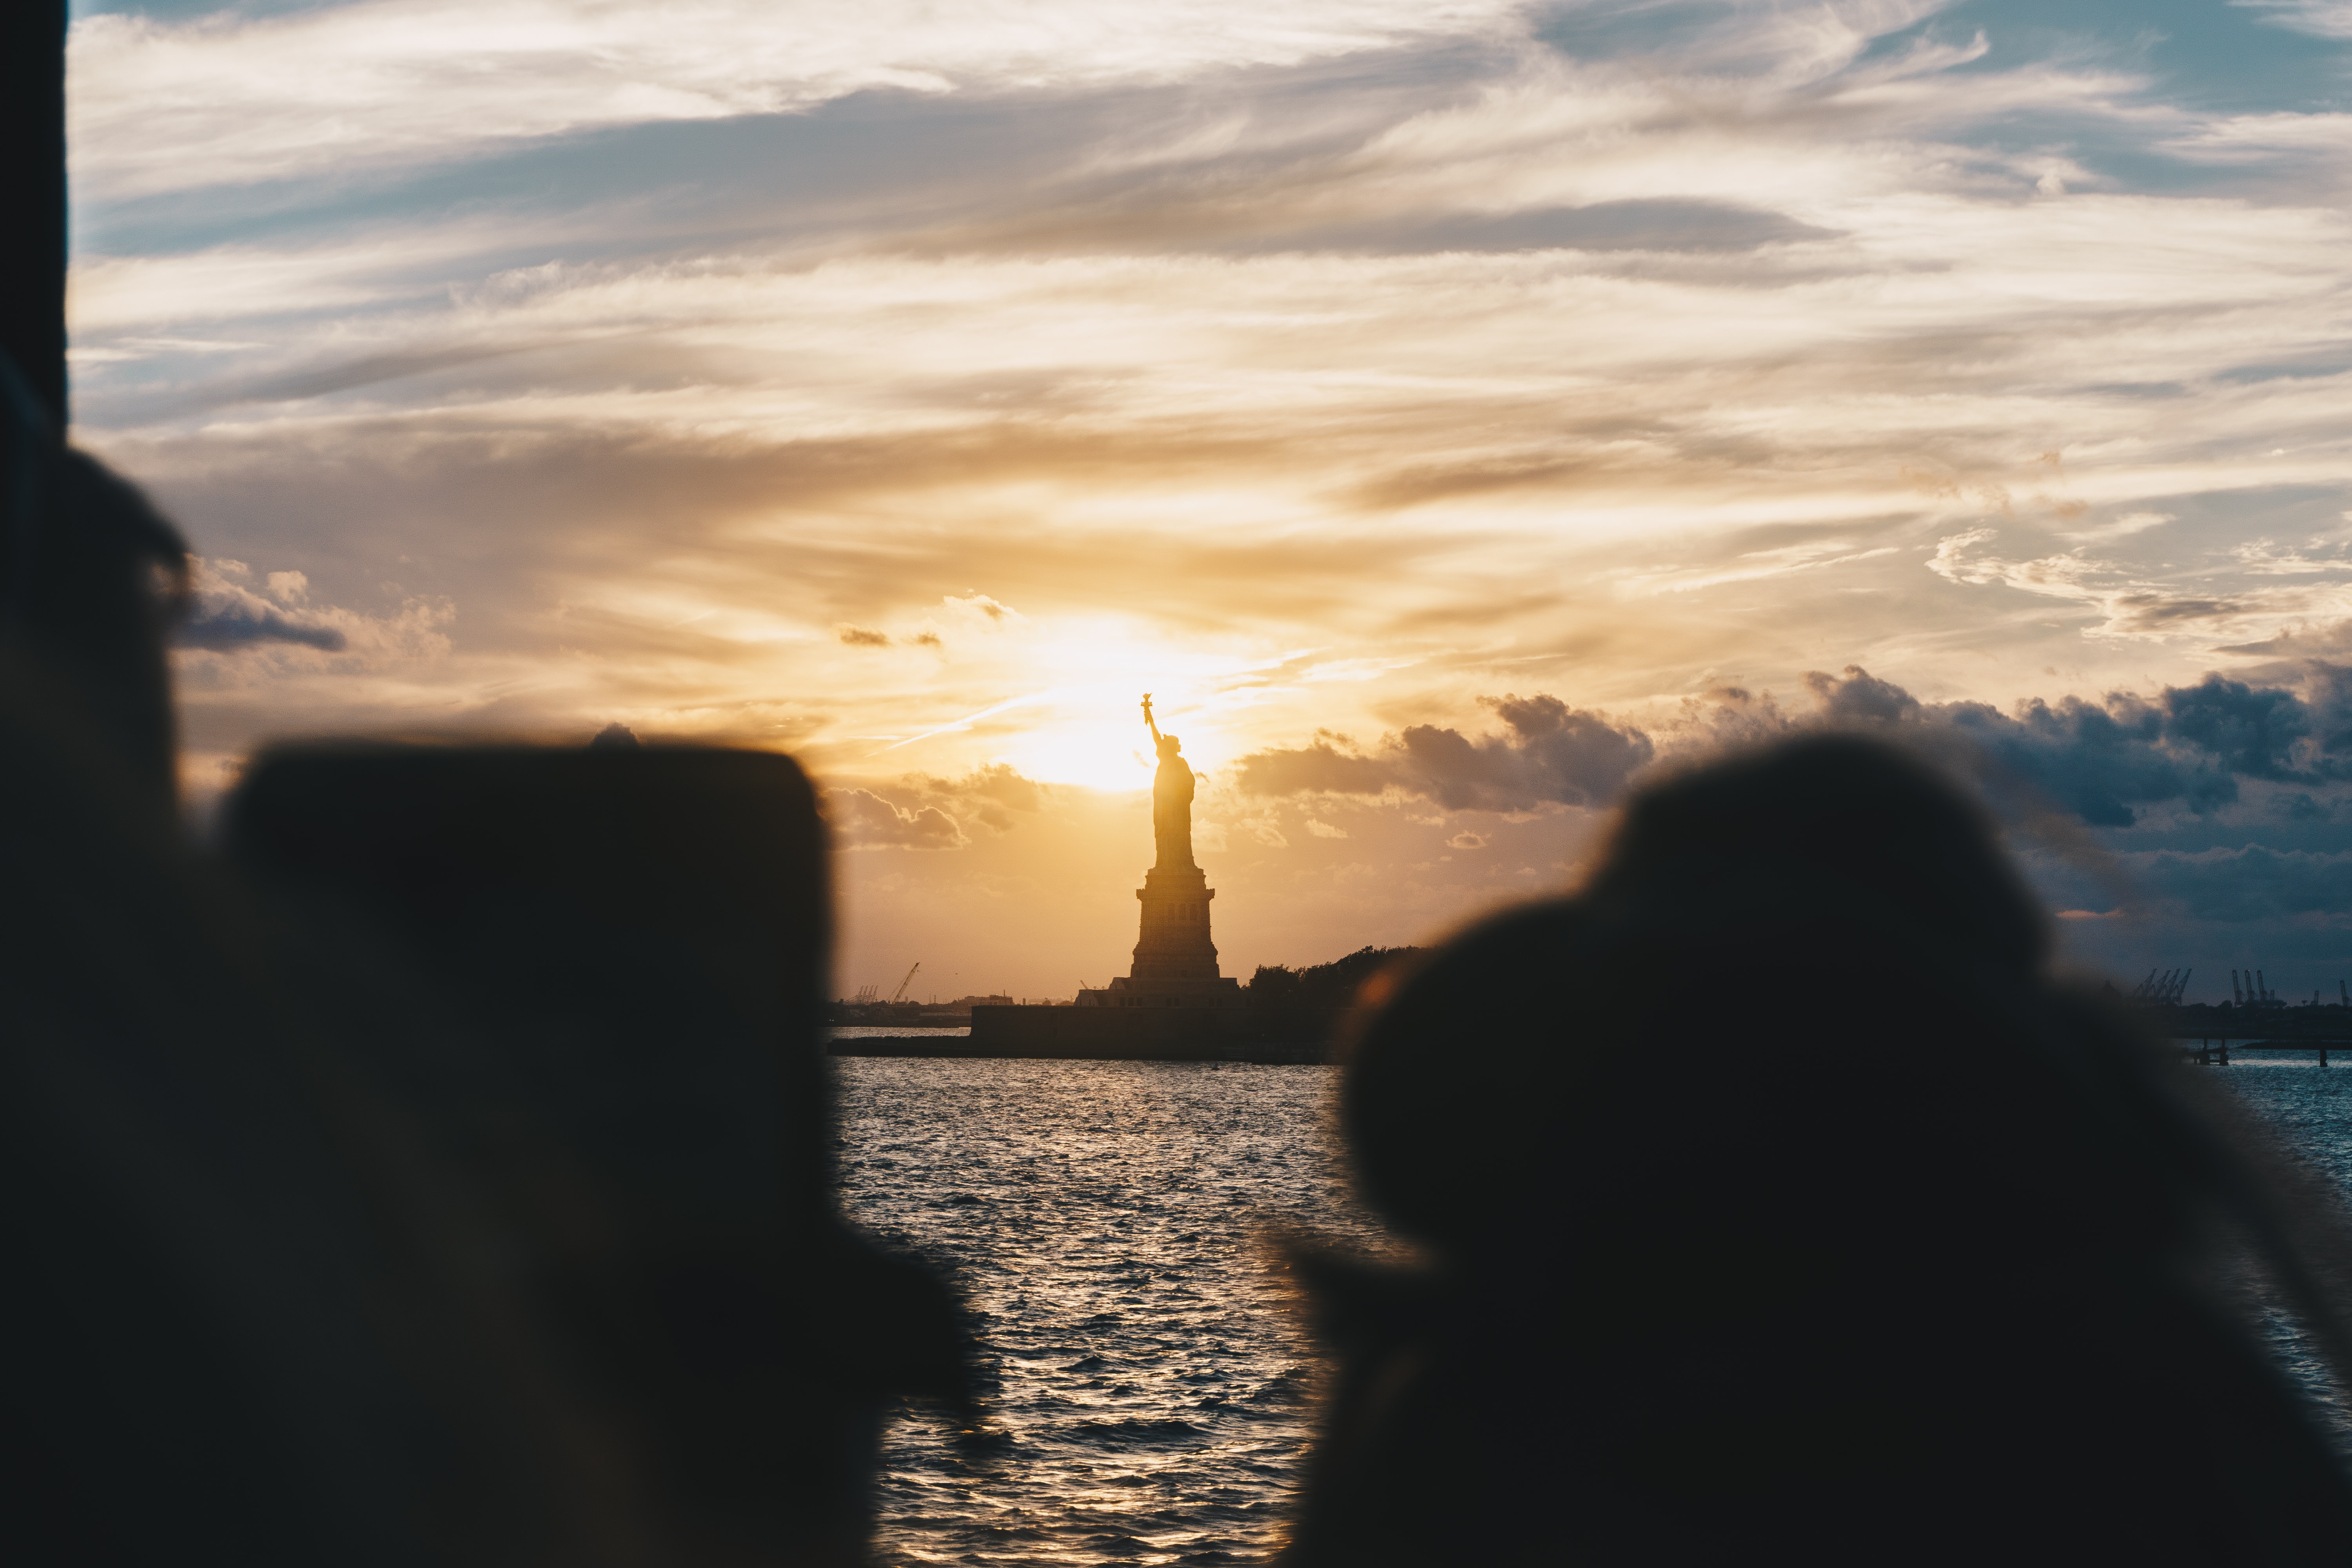 silhouette of Statue of Liberty, New York during golden hour